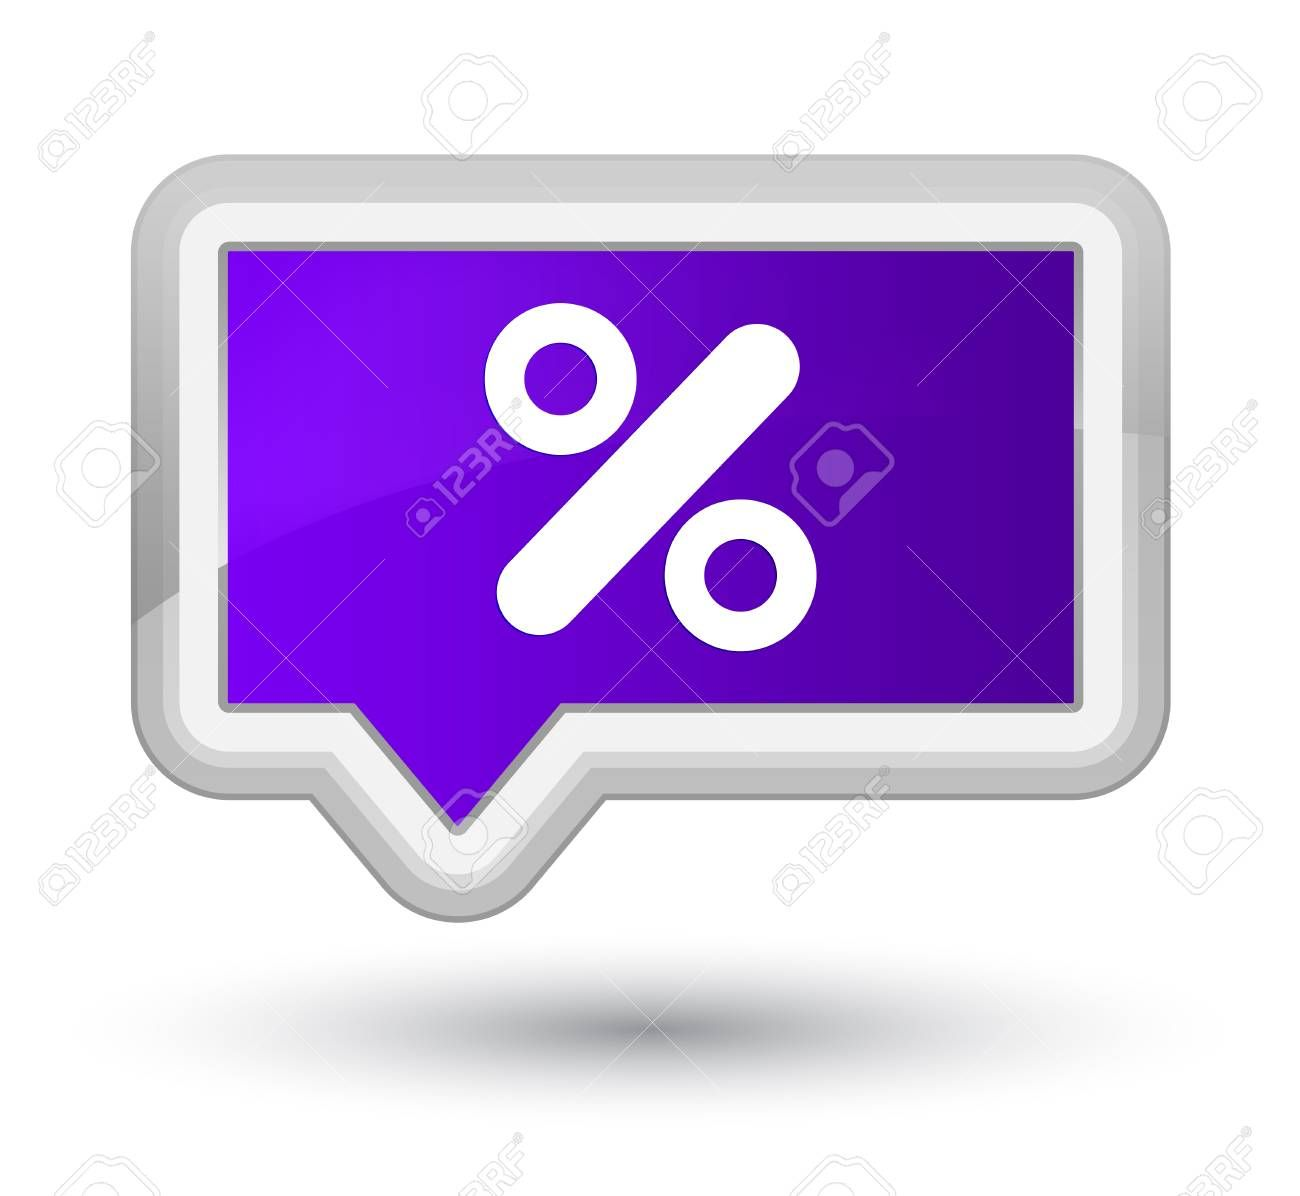 Discount Icon Isolated On Prime Purple Banner Button Abstract Illustration Affiliate Isolated Prime Discount Icon Purple Flip Clock Illustration